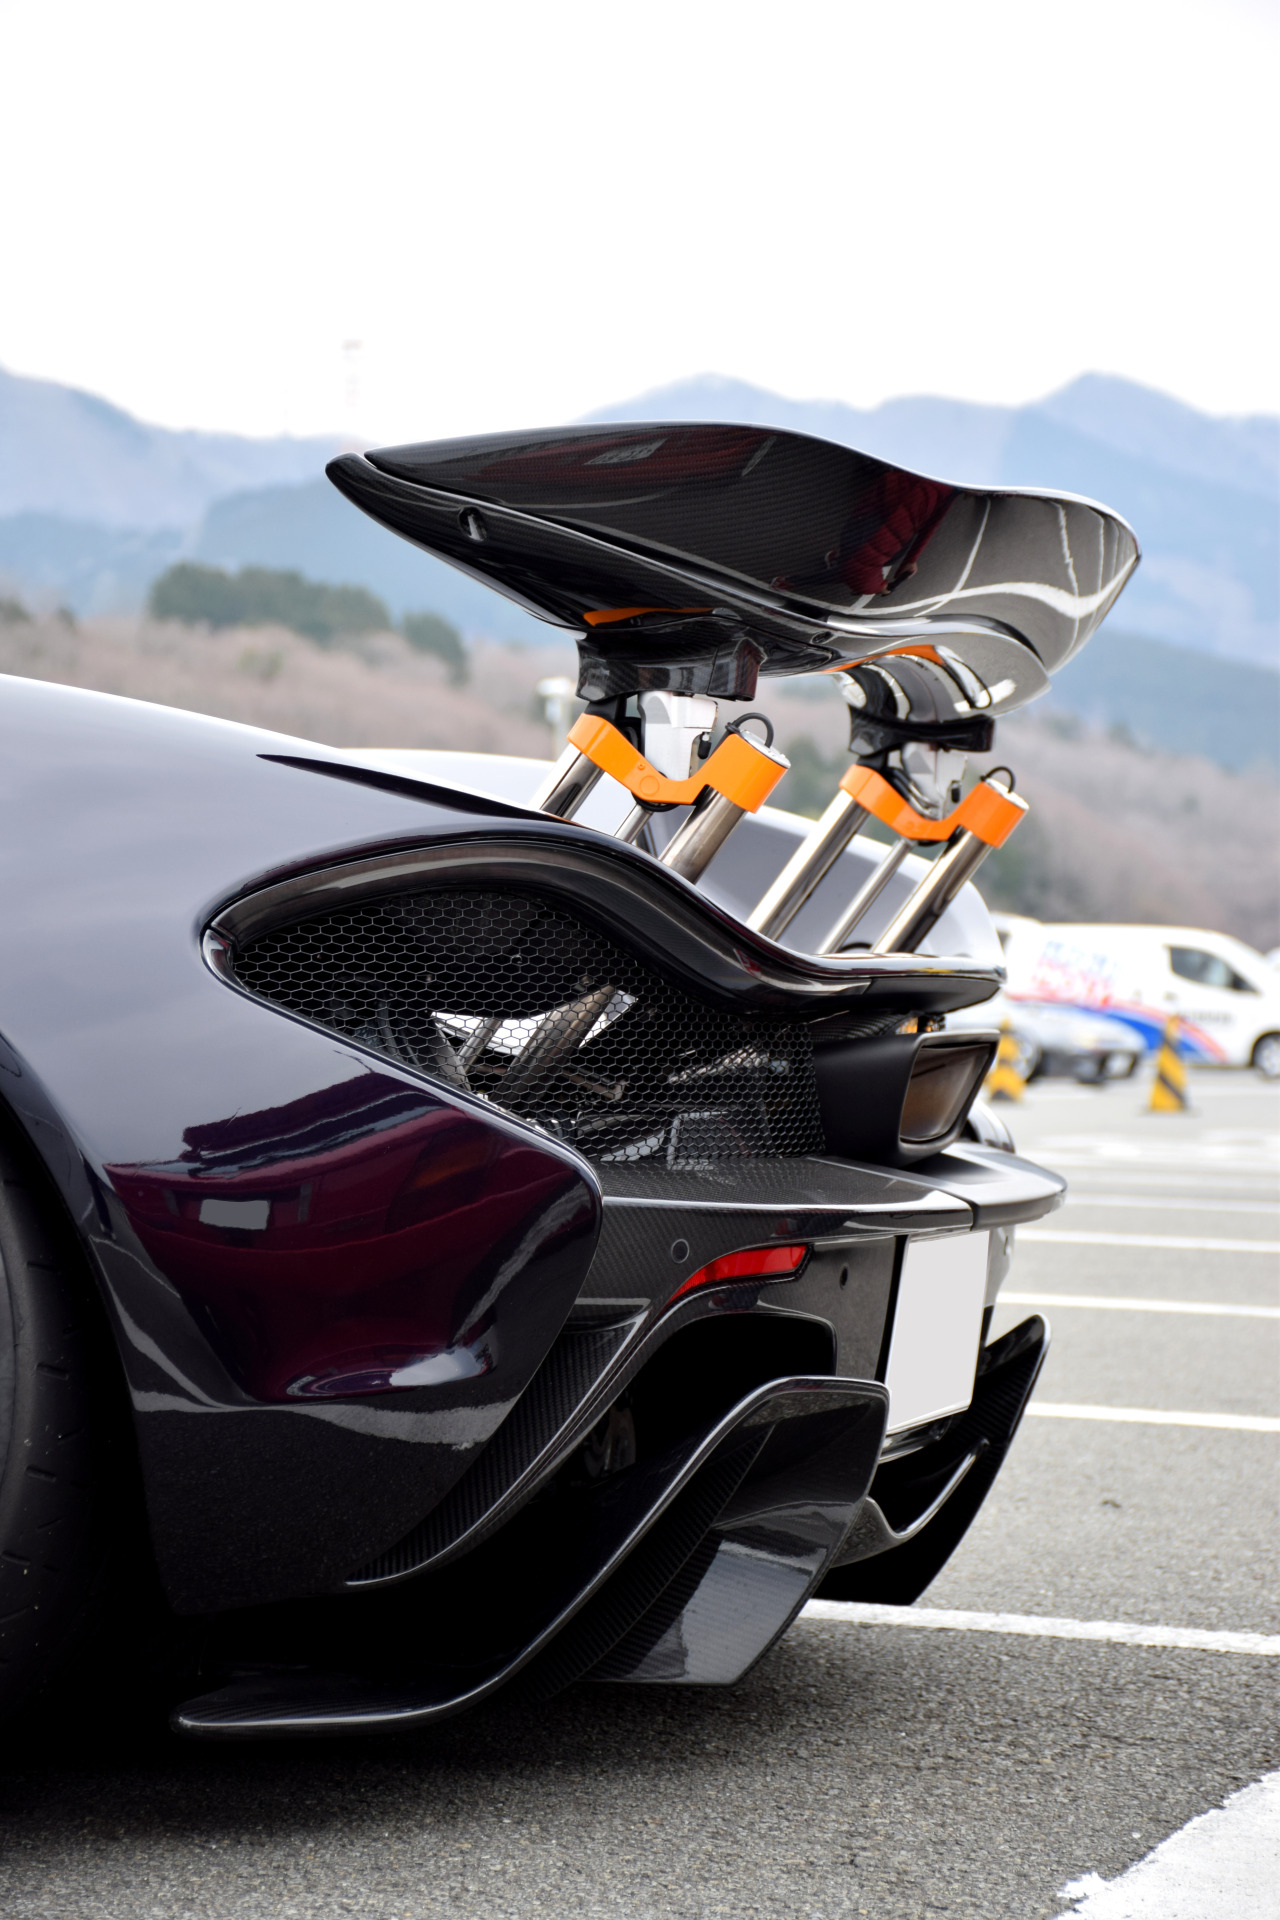 mclaren p1 spoiler back sportcar parking 1280x1920